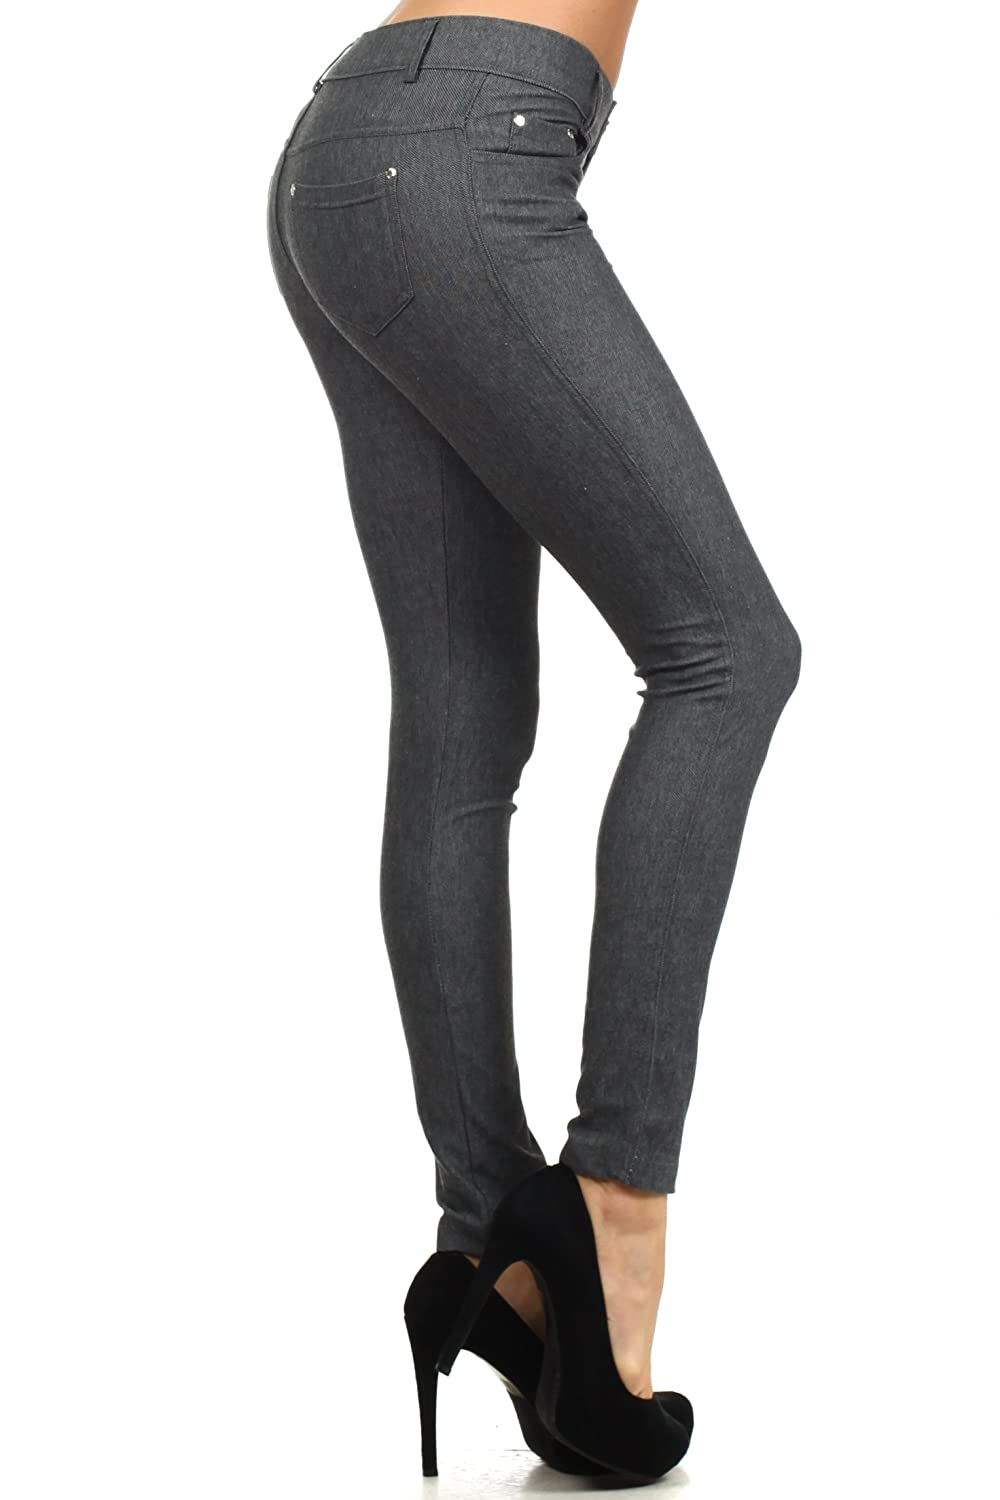 e215303e7d9cd ICONOFLASH Womens Stretch Jeggings - Slimming Cotton Pull On Jean Like  Leggings With Plus Size Options